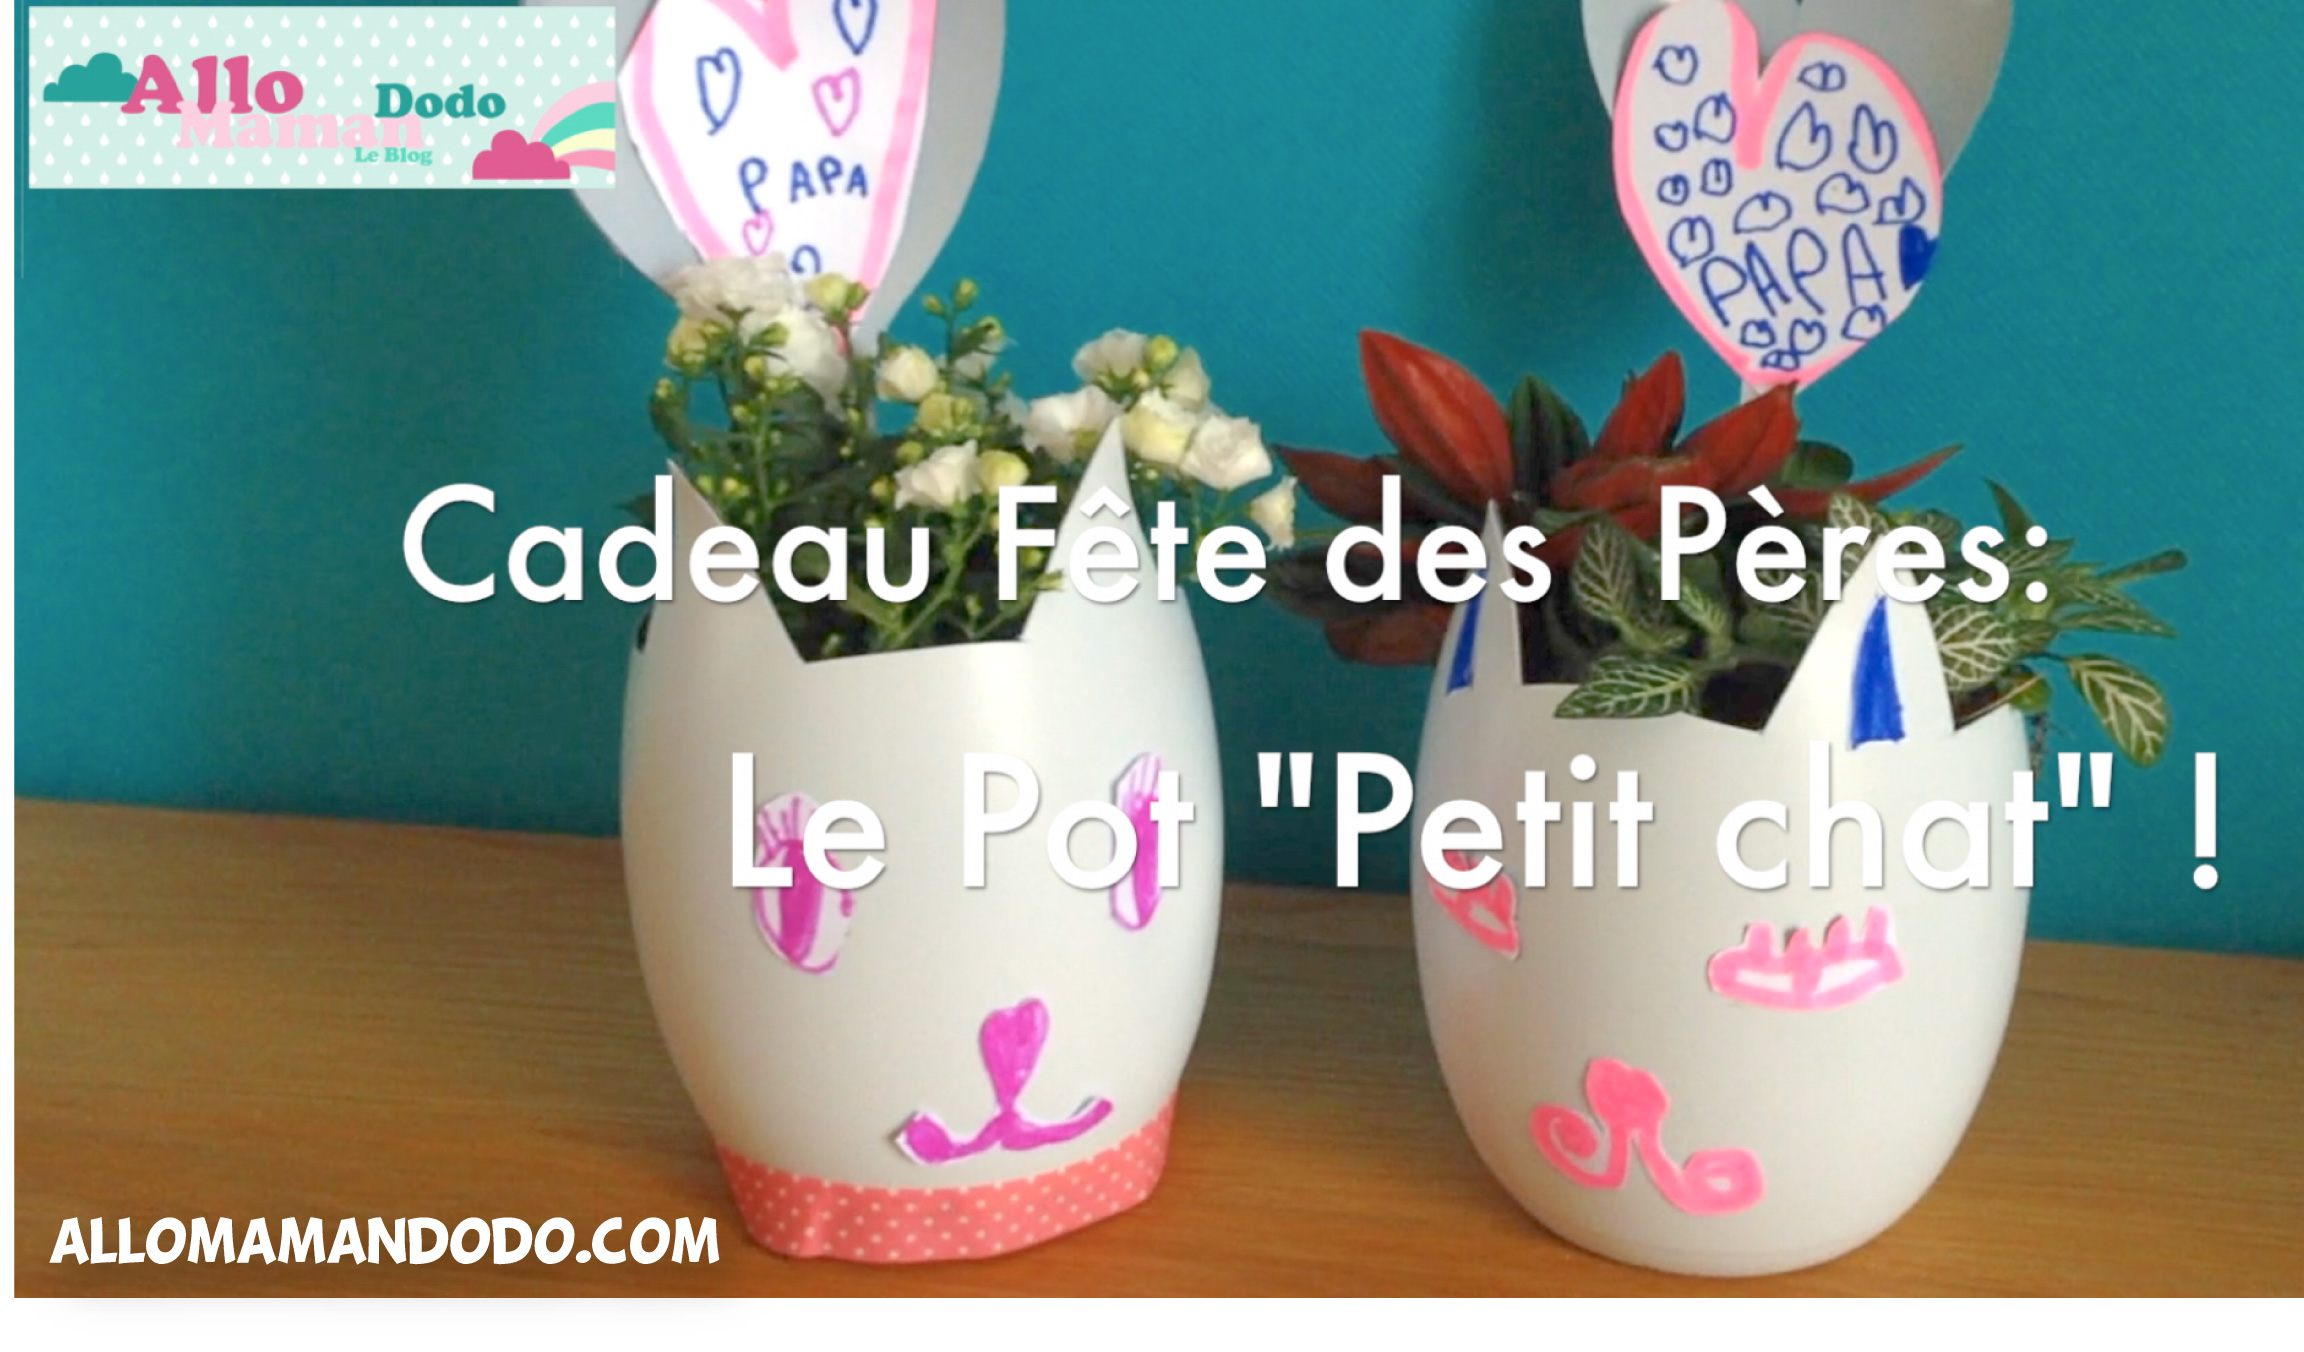 diy cadeau f te des p res le pot petit chat pour papa bledinafetelespapas allo maman dodo. Black Bedroom Furniture Sets. Home Design Ideas